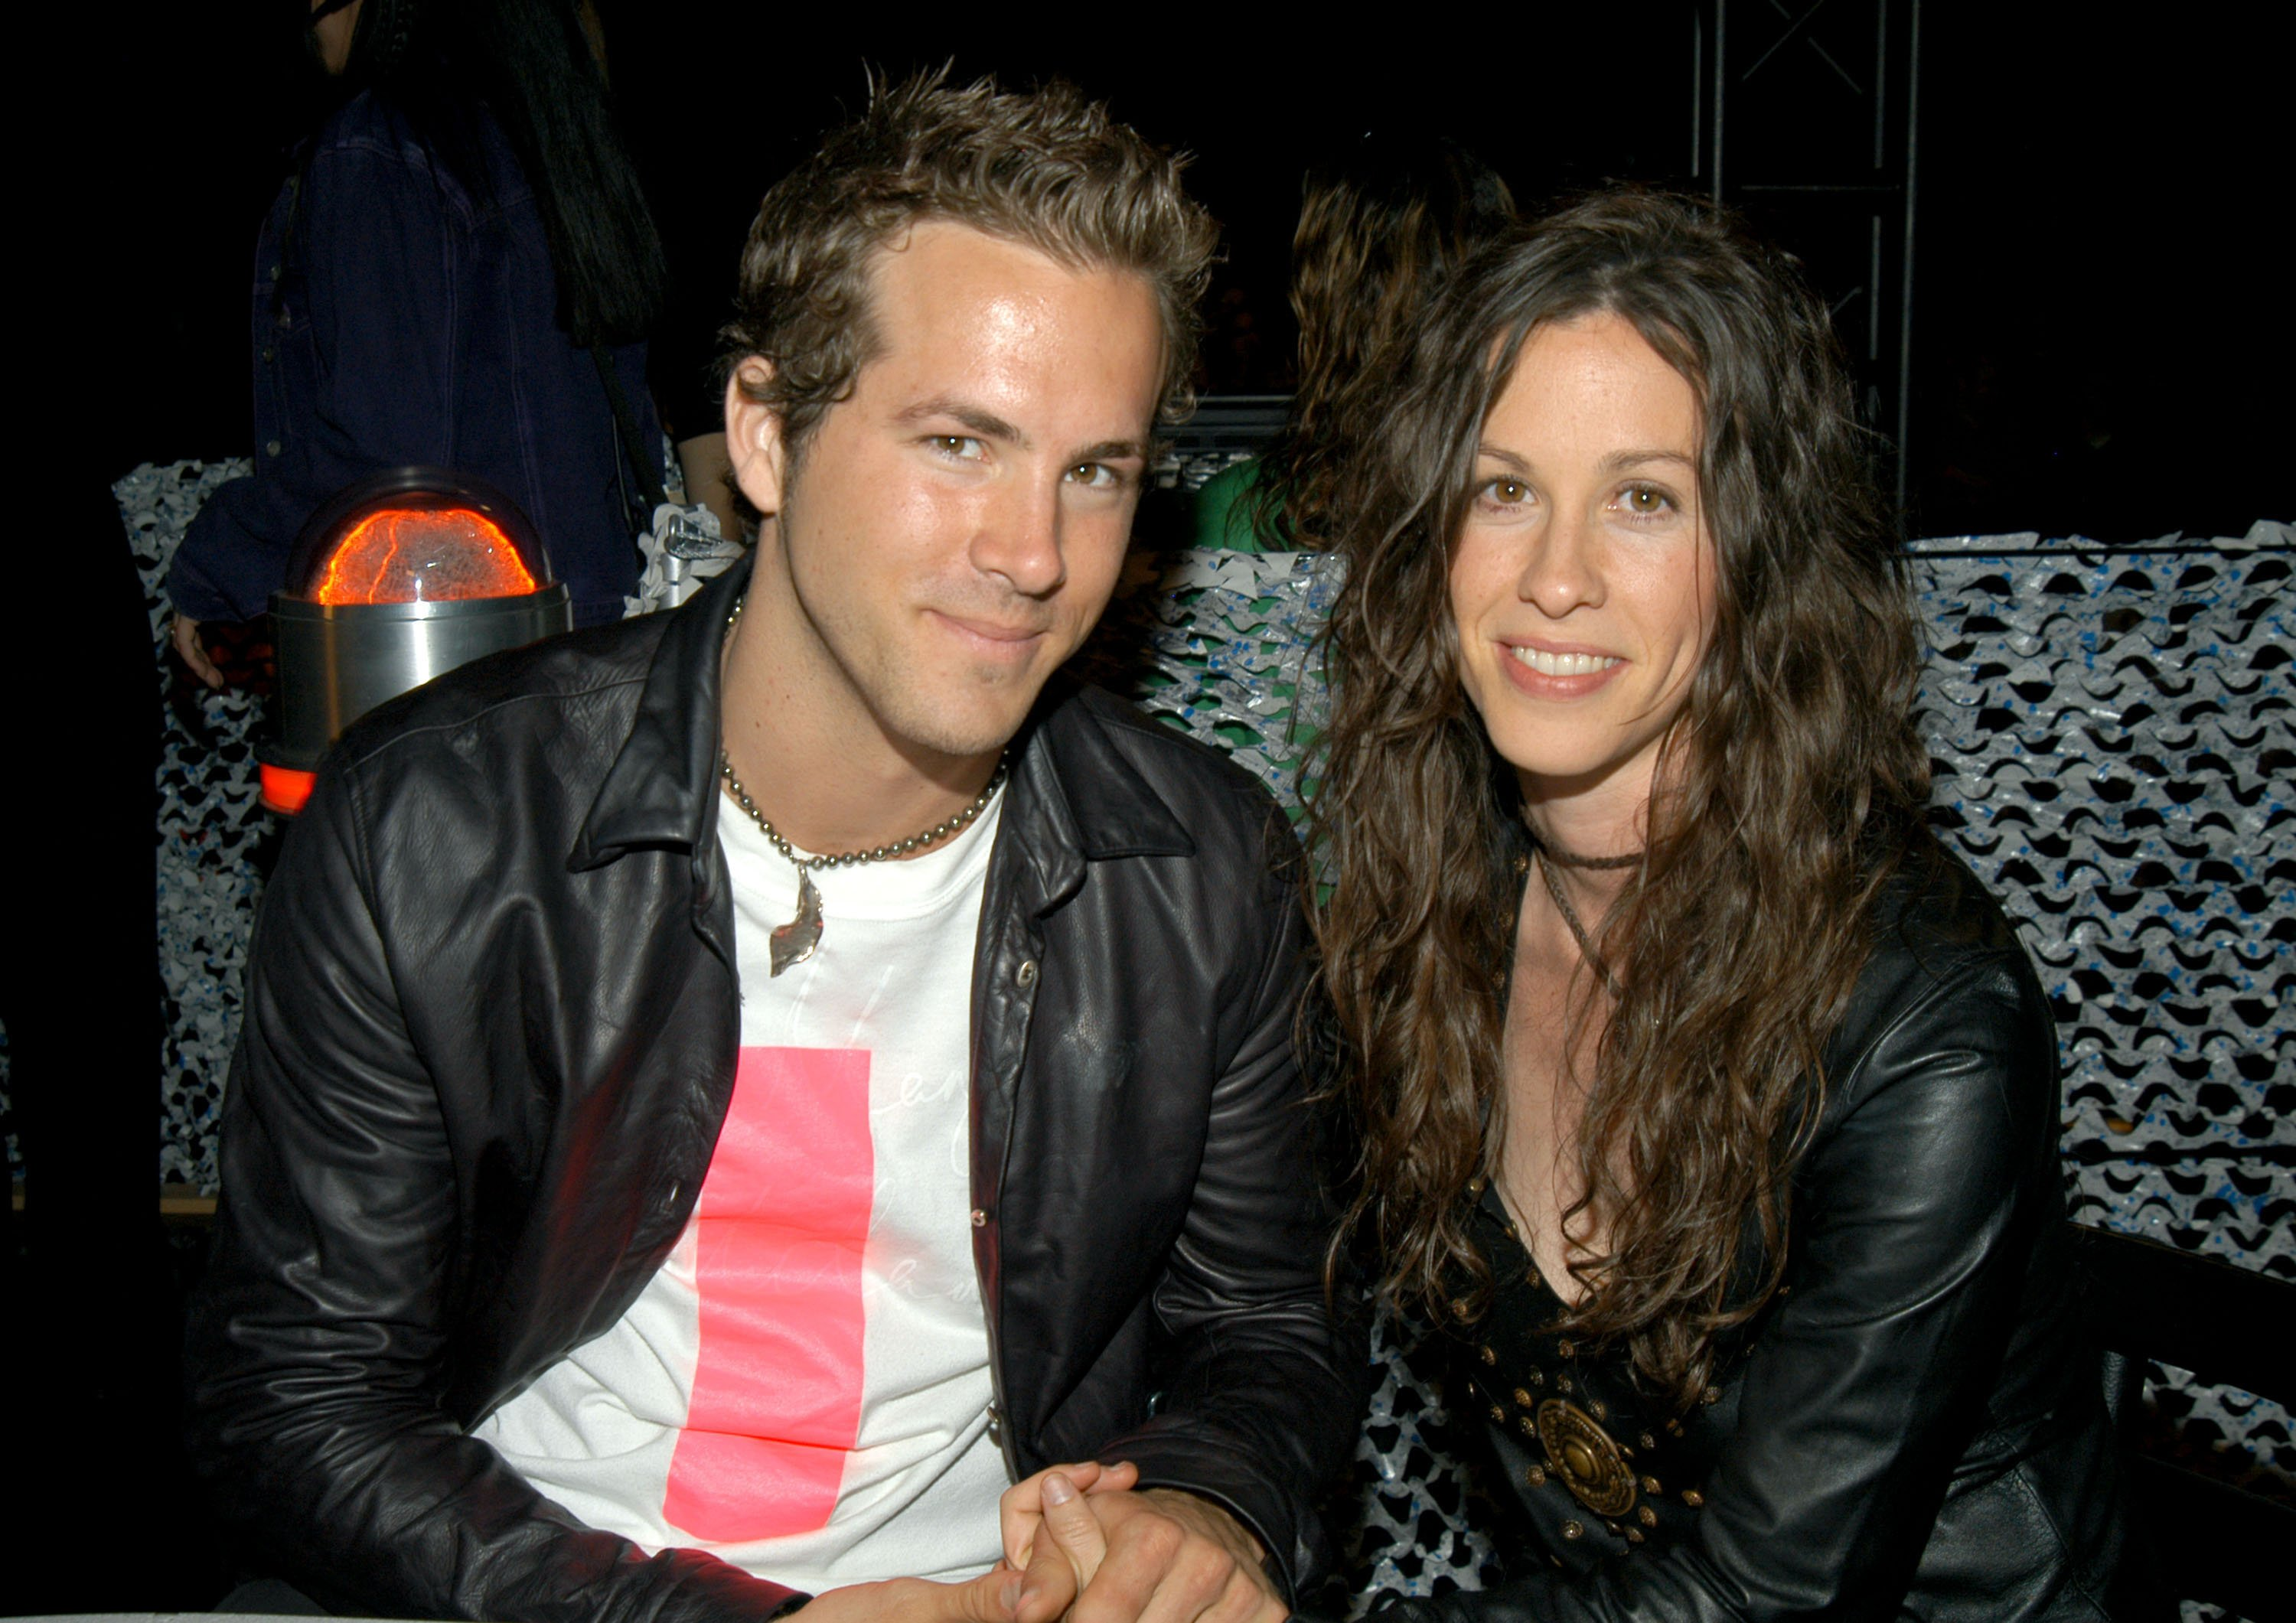 Image Source: Getty Images/Ryan and Alanis